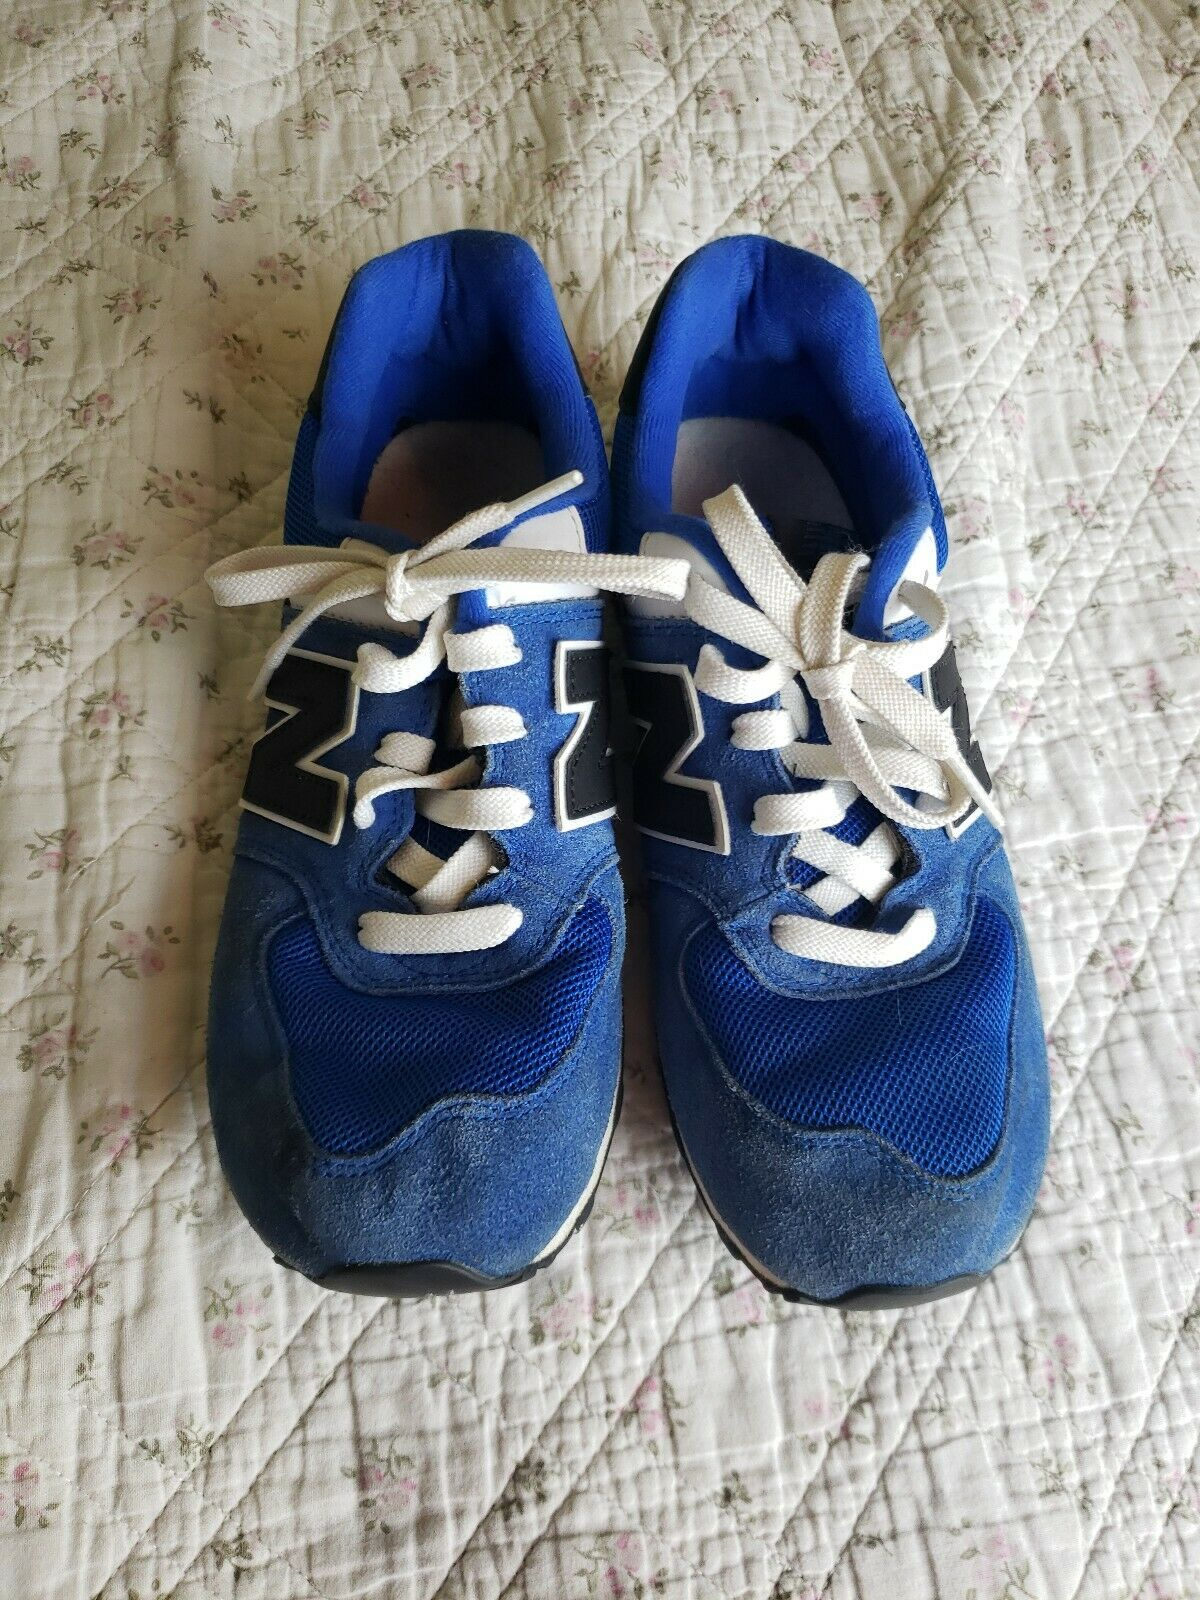 New Balance Women's 574 Classics Running Sneakers Shoes Size 6 Blue